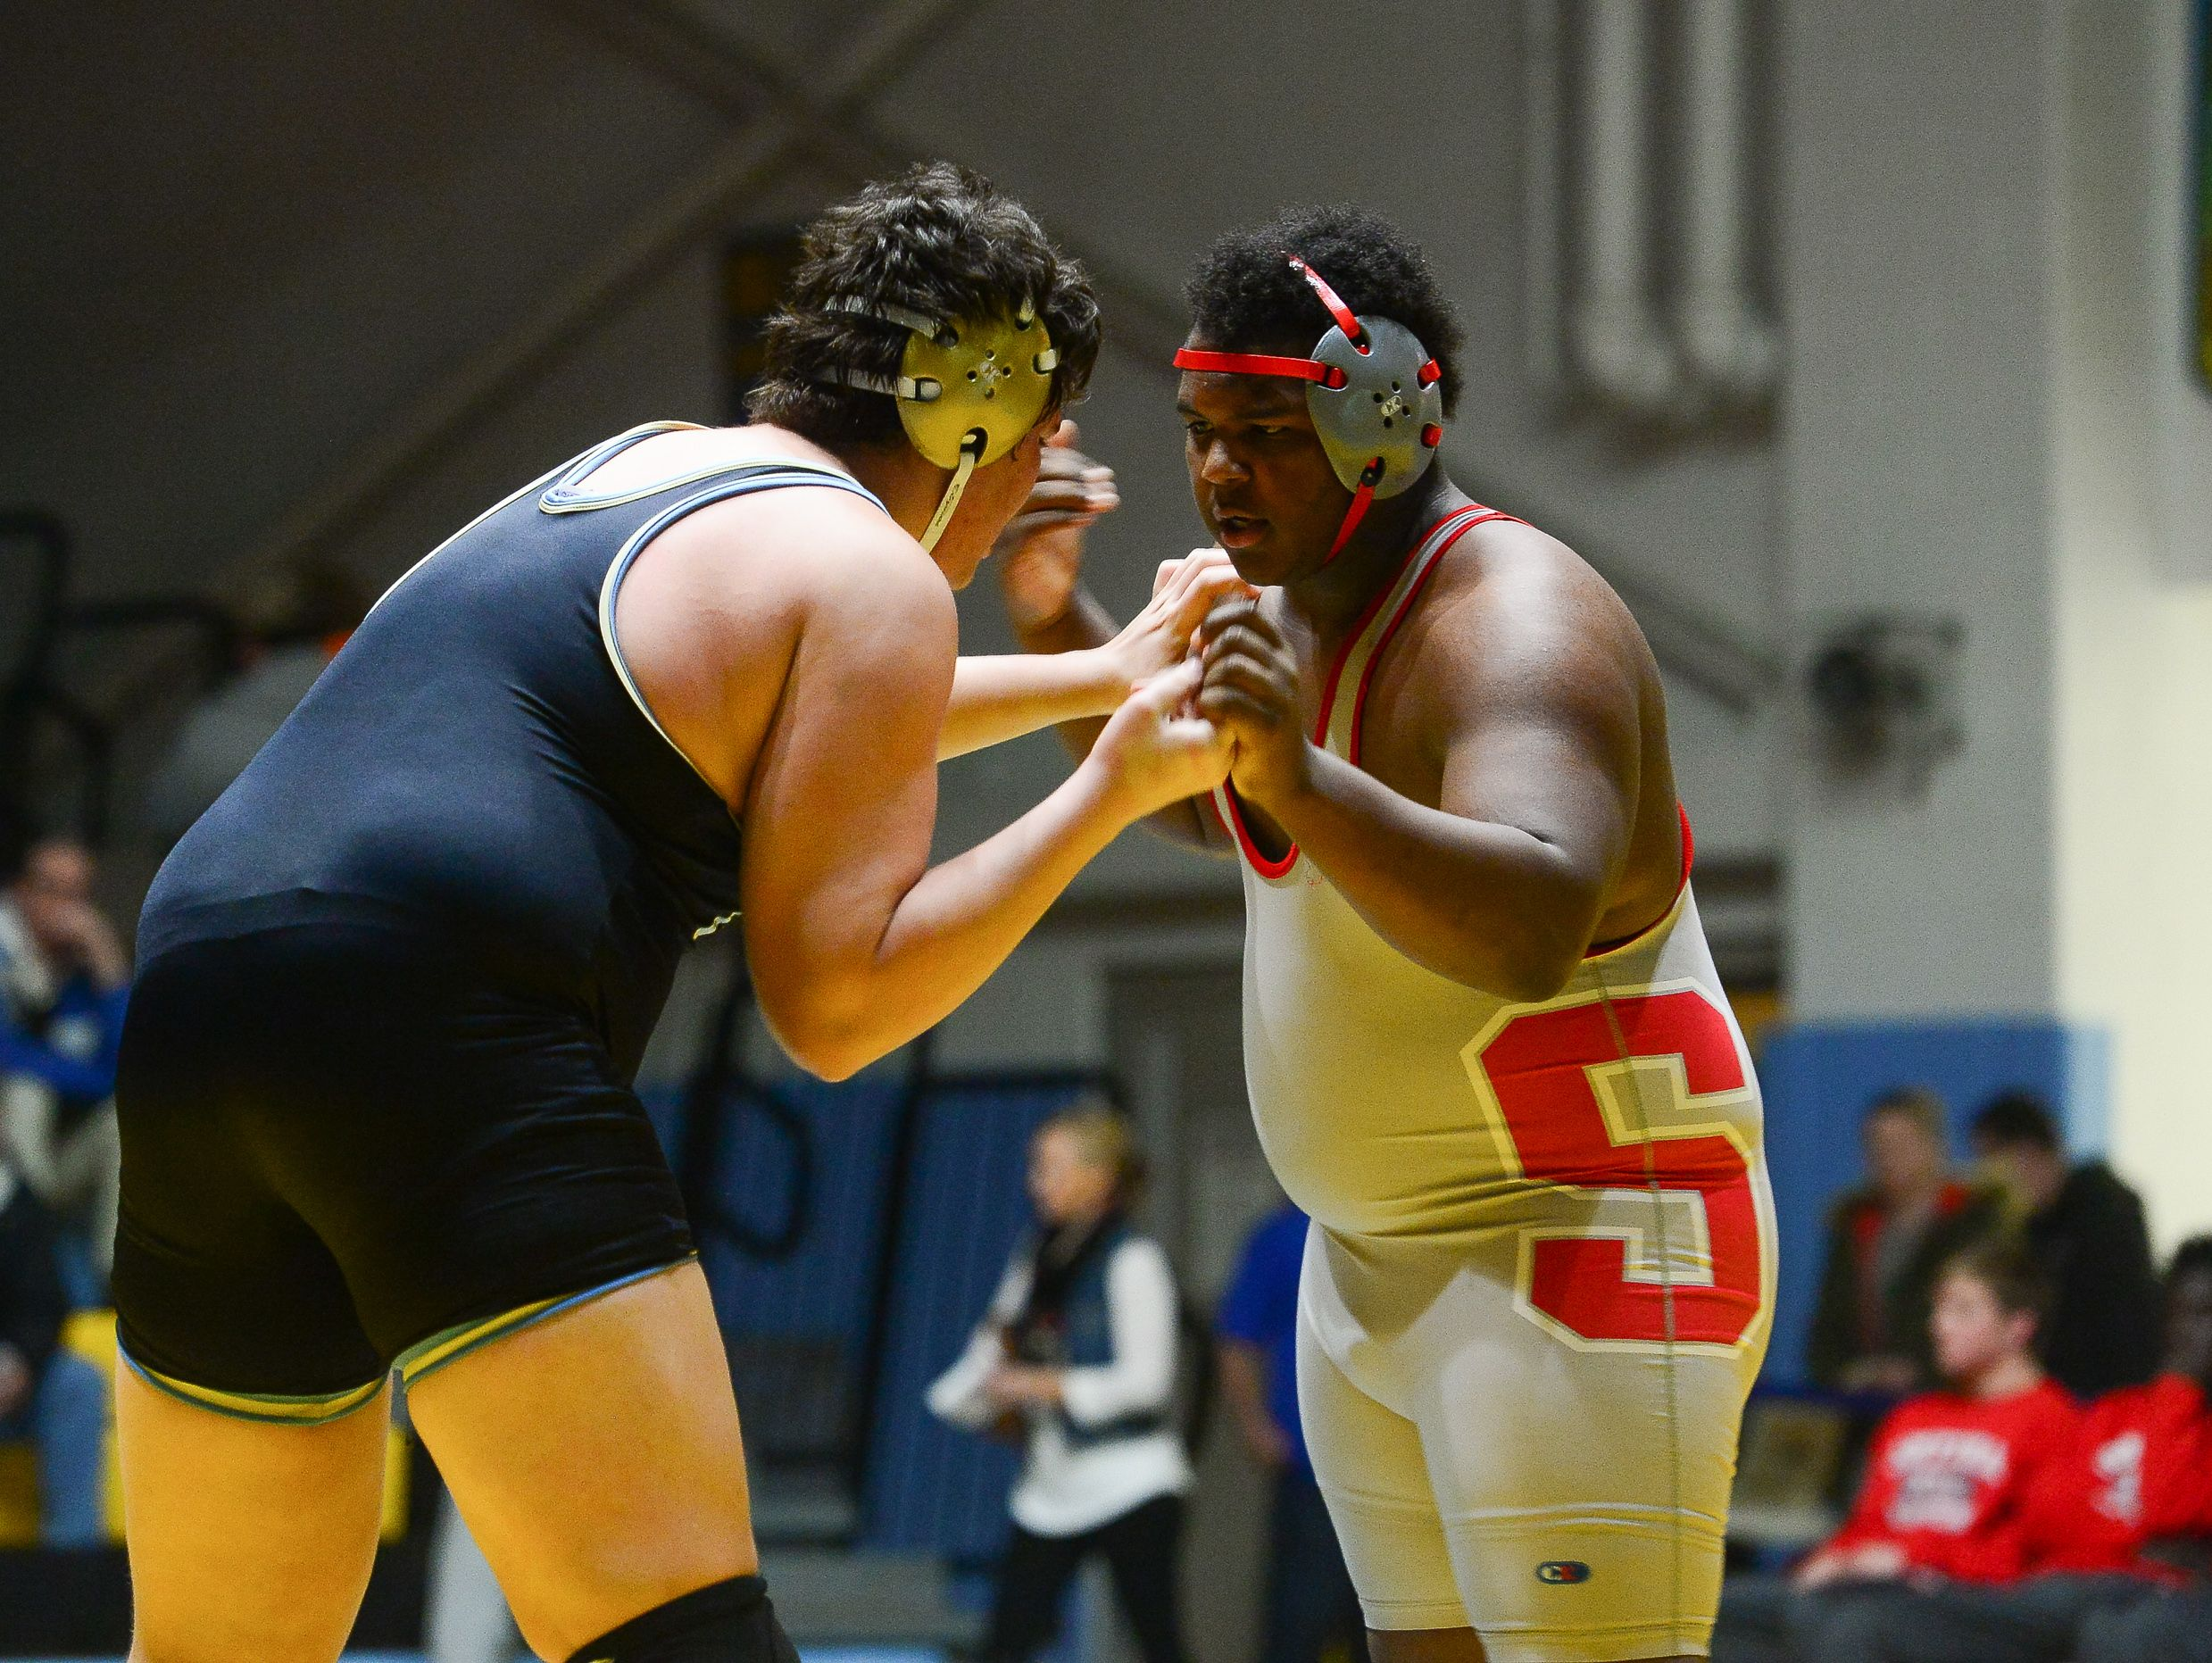 Cape's Zach Flores matches up against Smyrna's Elijah Taylor during the 285lb match up at Cape Henlopen High School on Wednesday, Jan. 18, 2017.